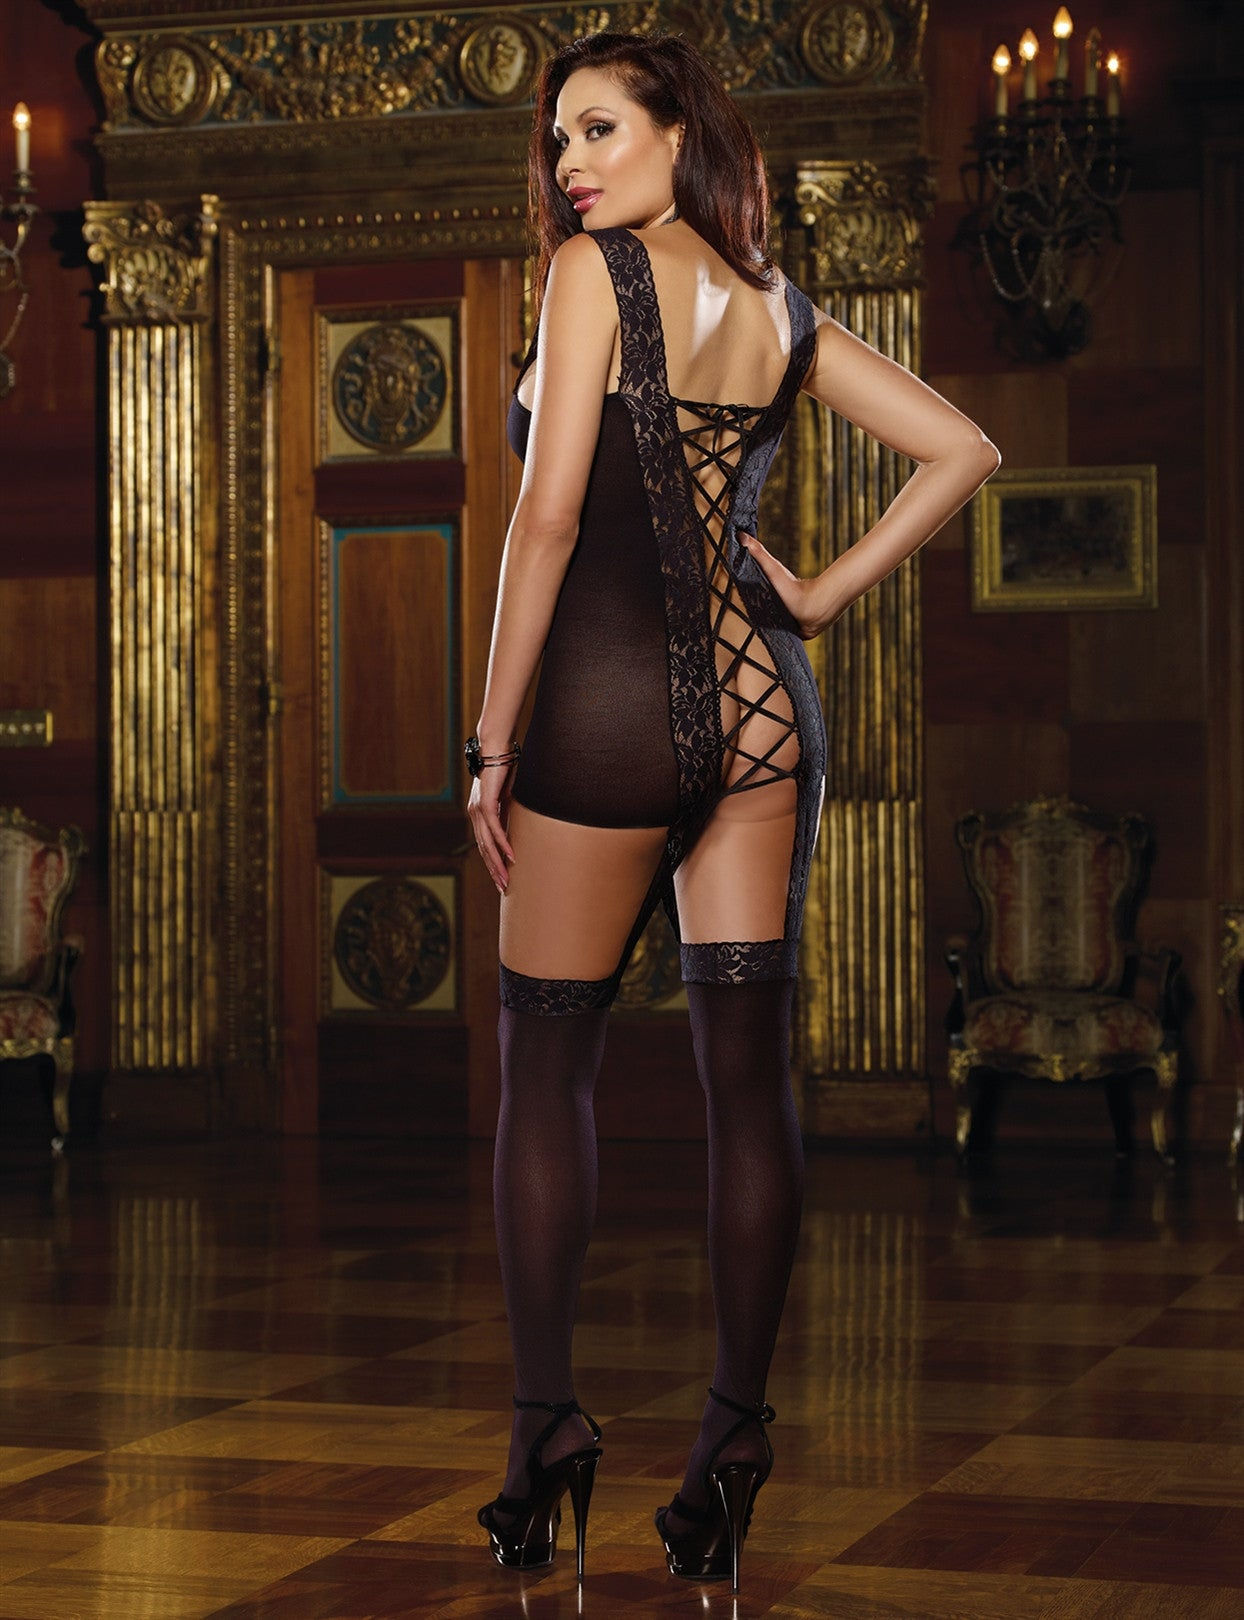 Plus Size Tahiti Hosiery Garter Dress - just damn sexy  - 2